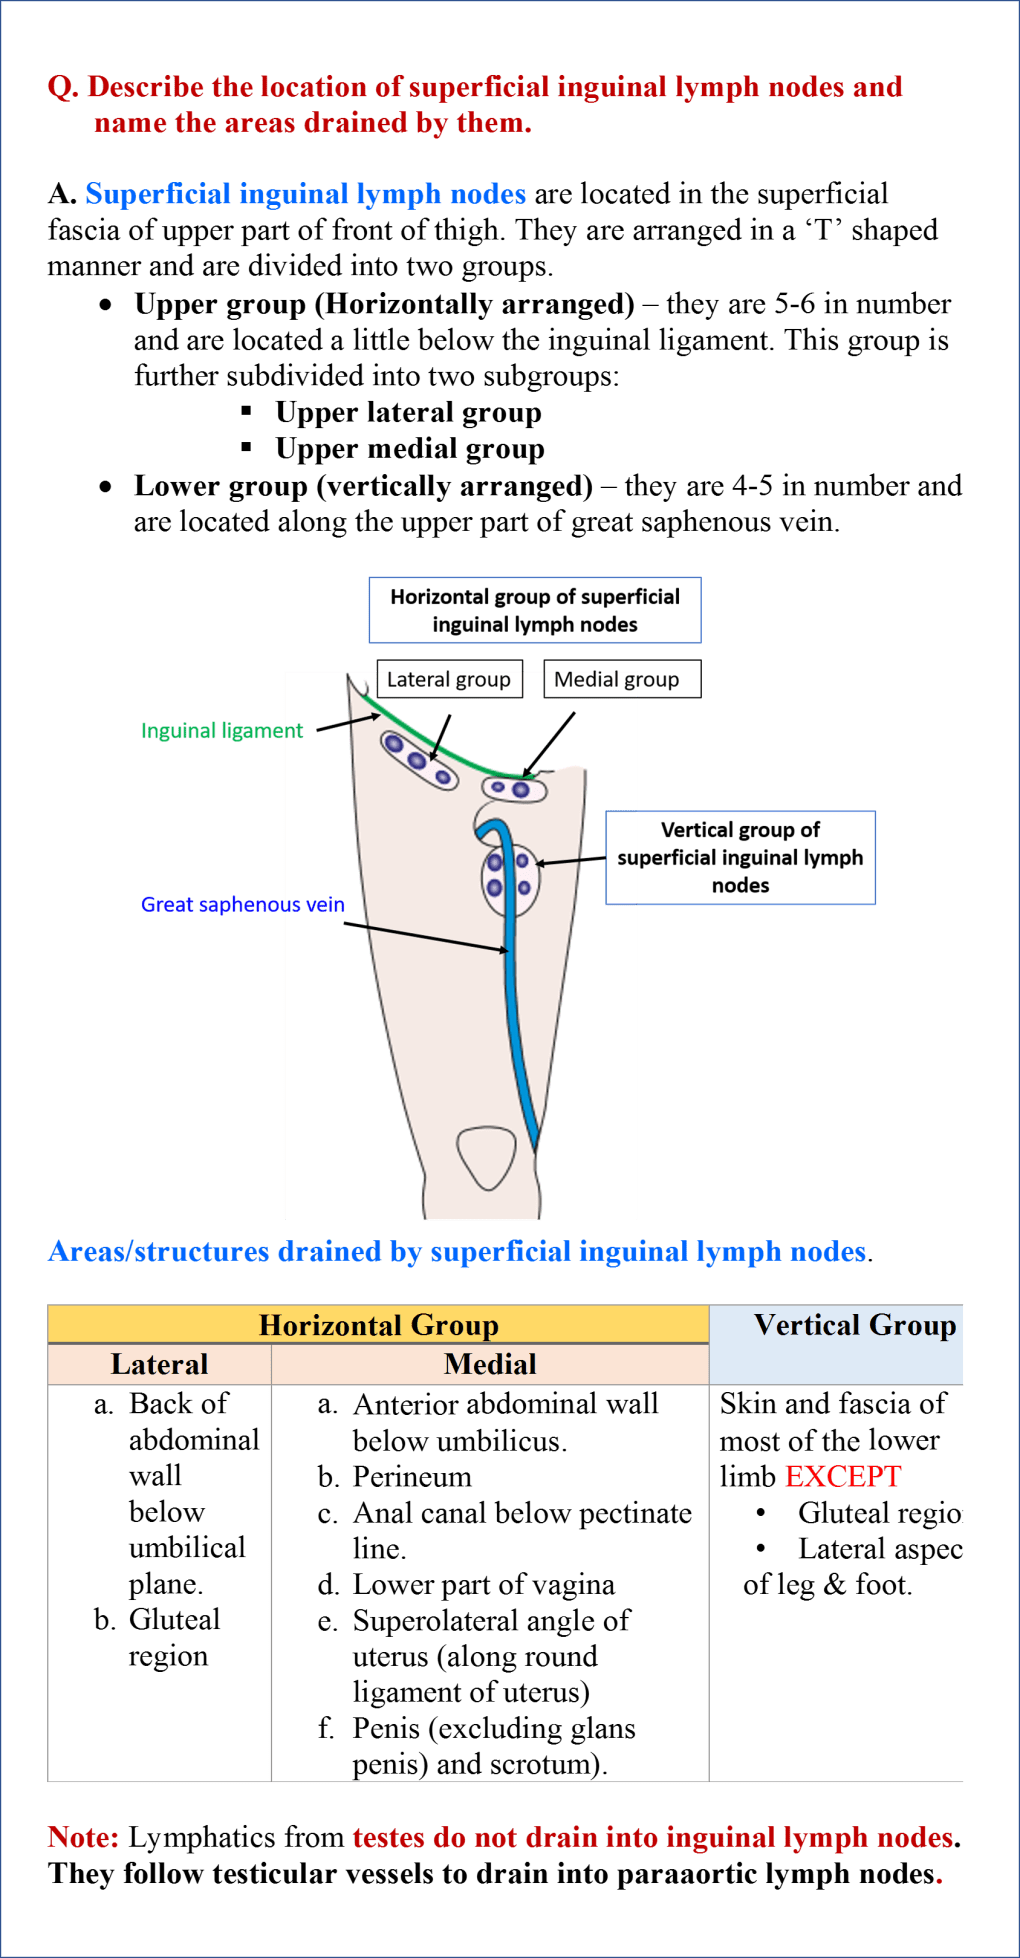 superficial inguinal lymph nodes and areas drained by them